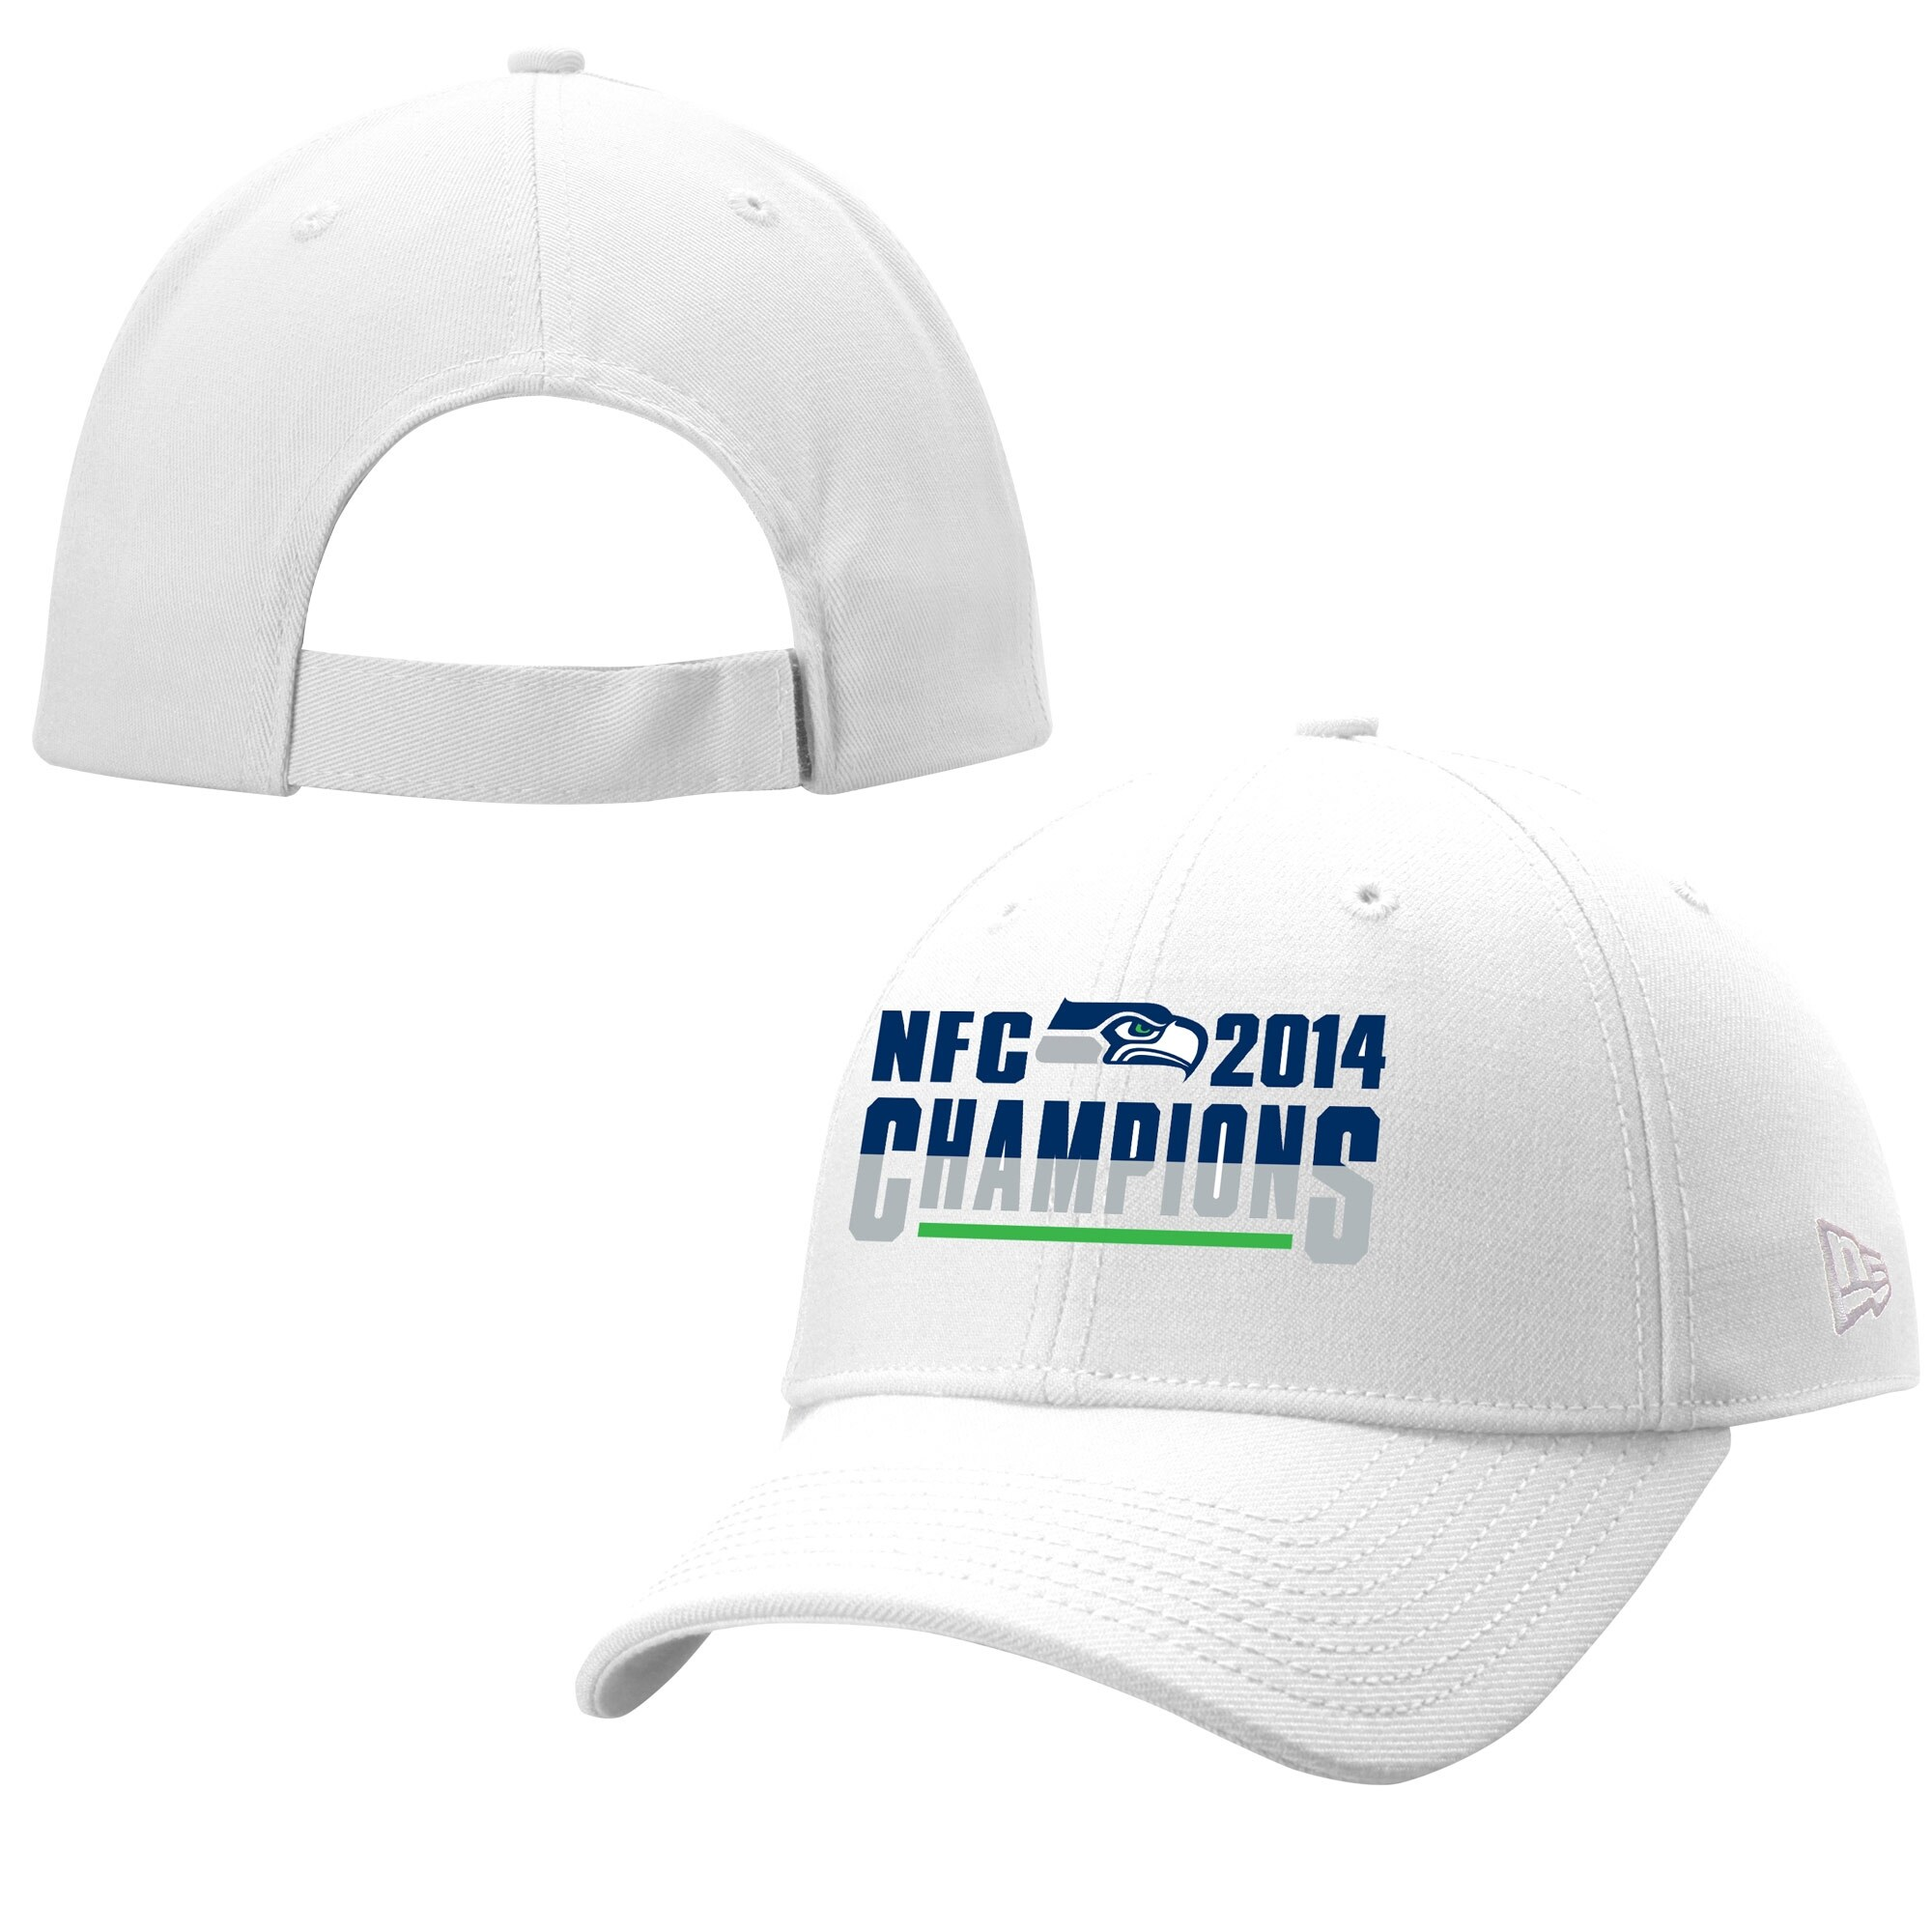 Seattle Seahawks New Era 2014 NFC Champions 9FORTY Adjustable Hat - White